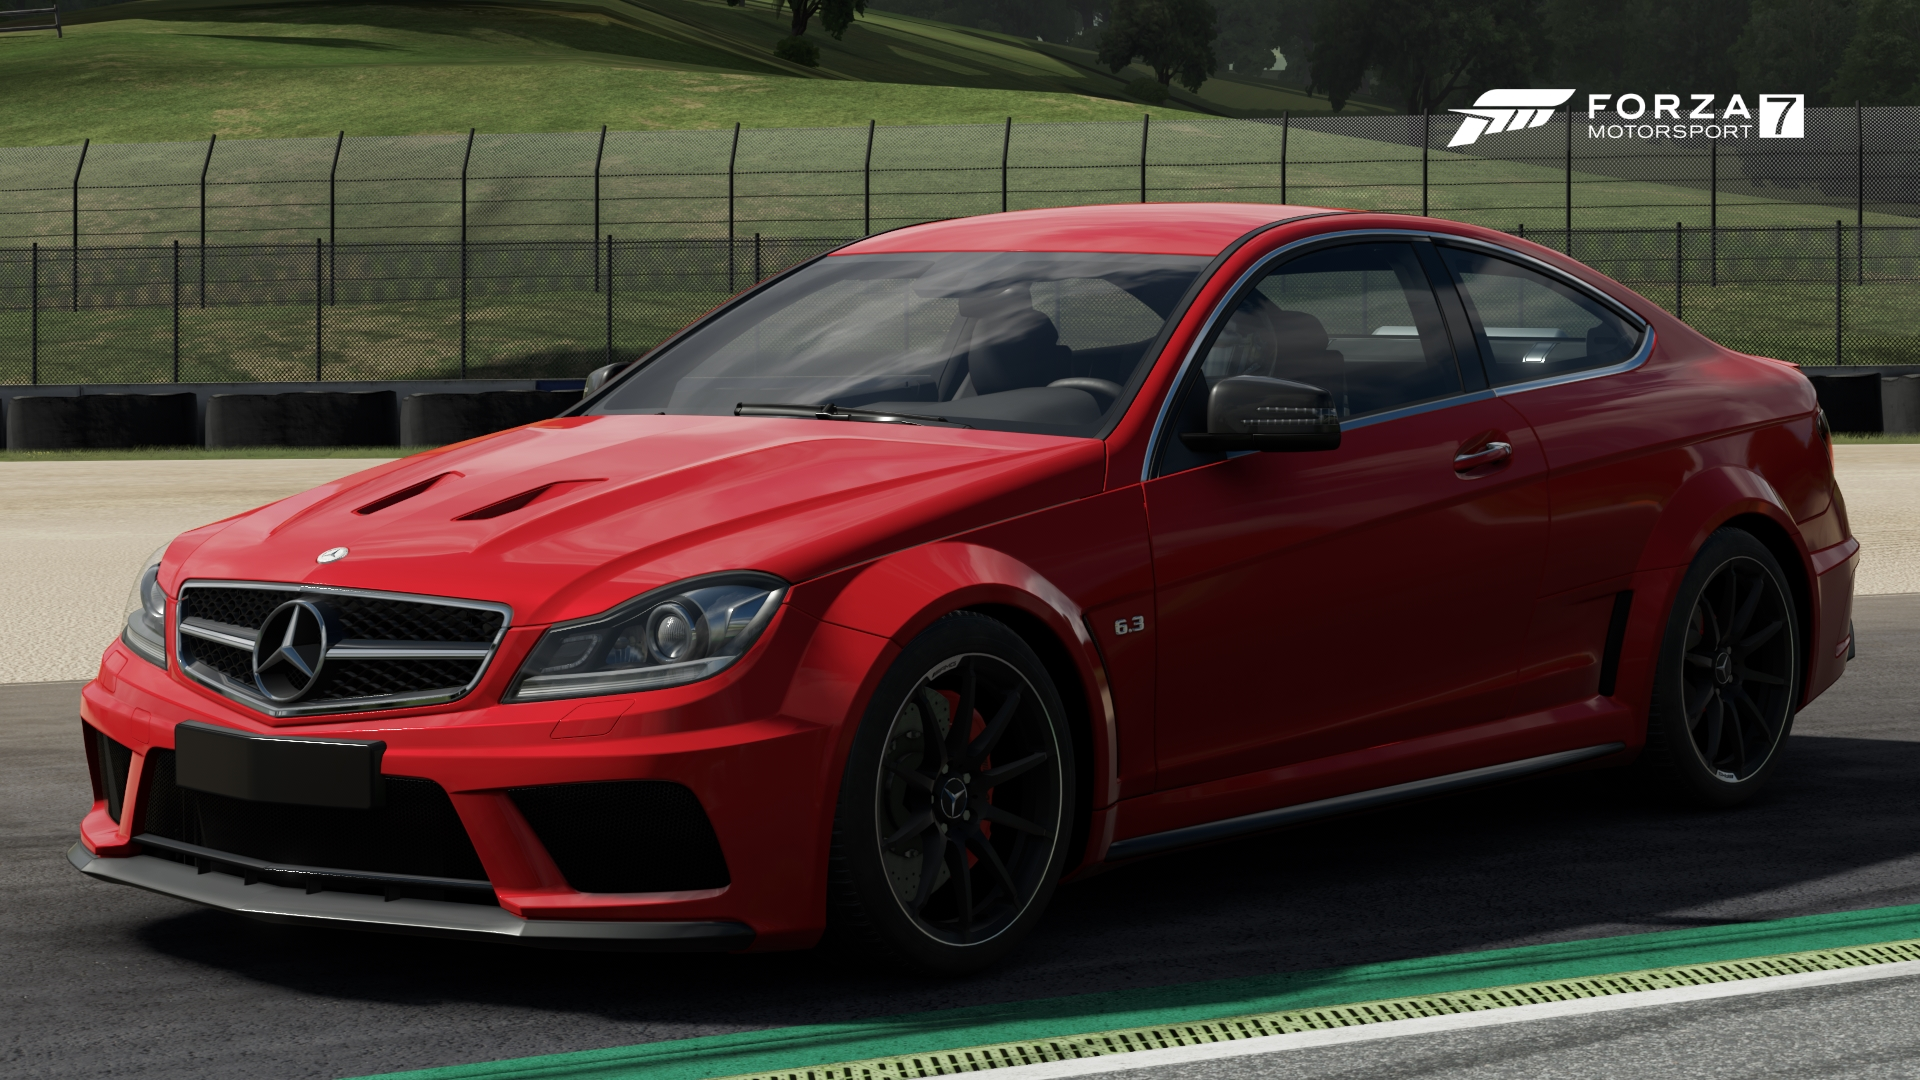 mercedes benz c 63 amg coup black series forza motorsport wiki fandom powered by wikia. Black Bedroom Furniture Sets. Home Design Ideas